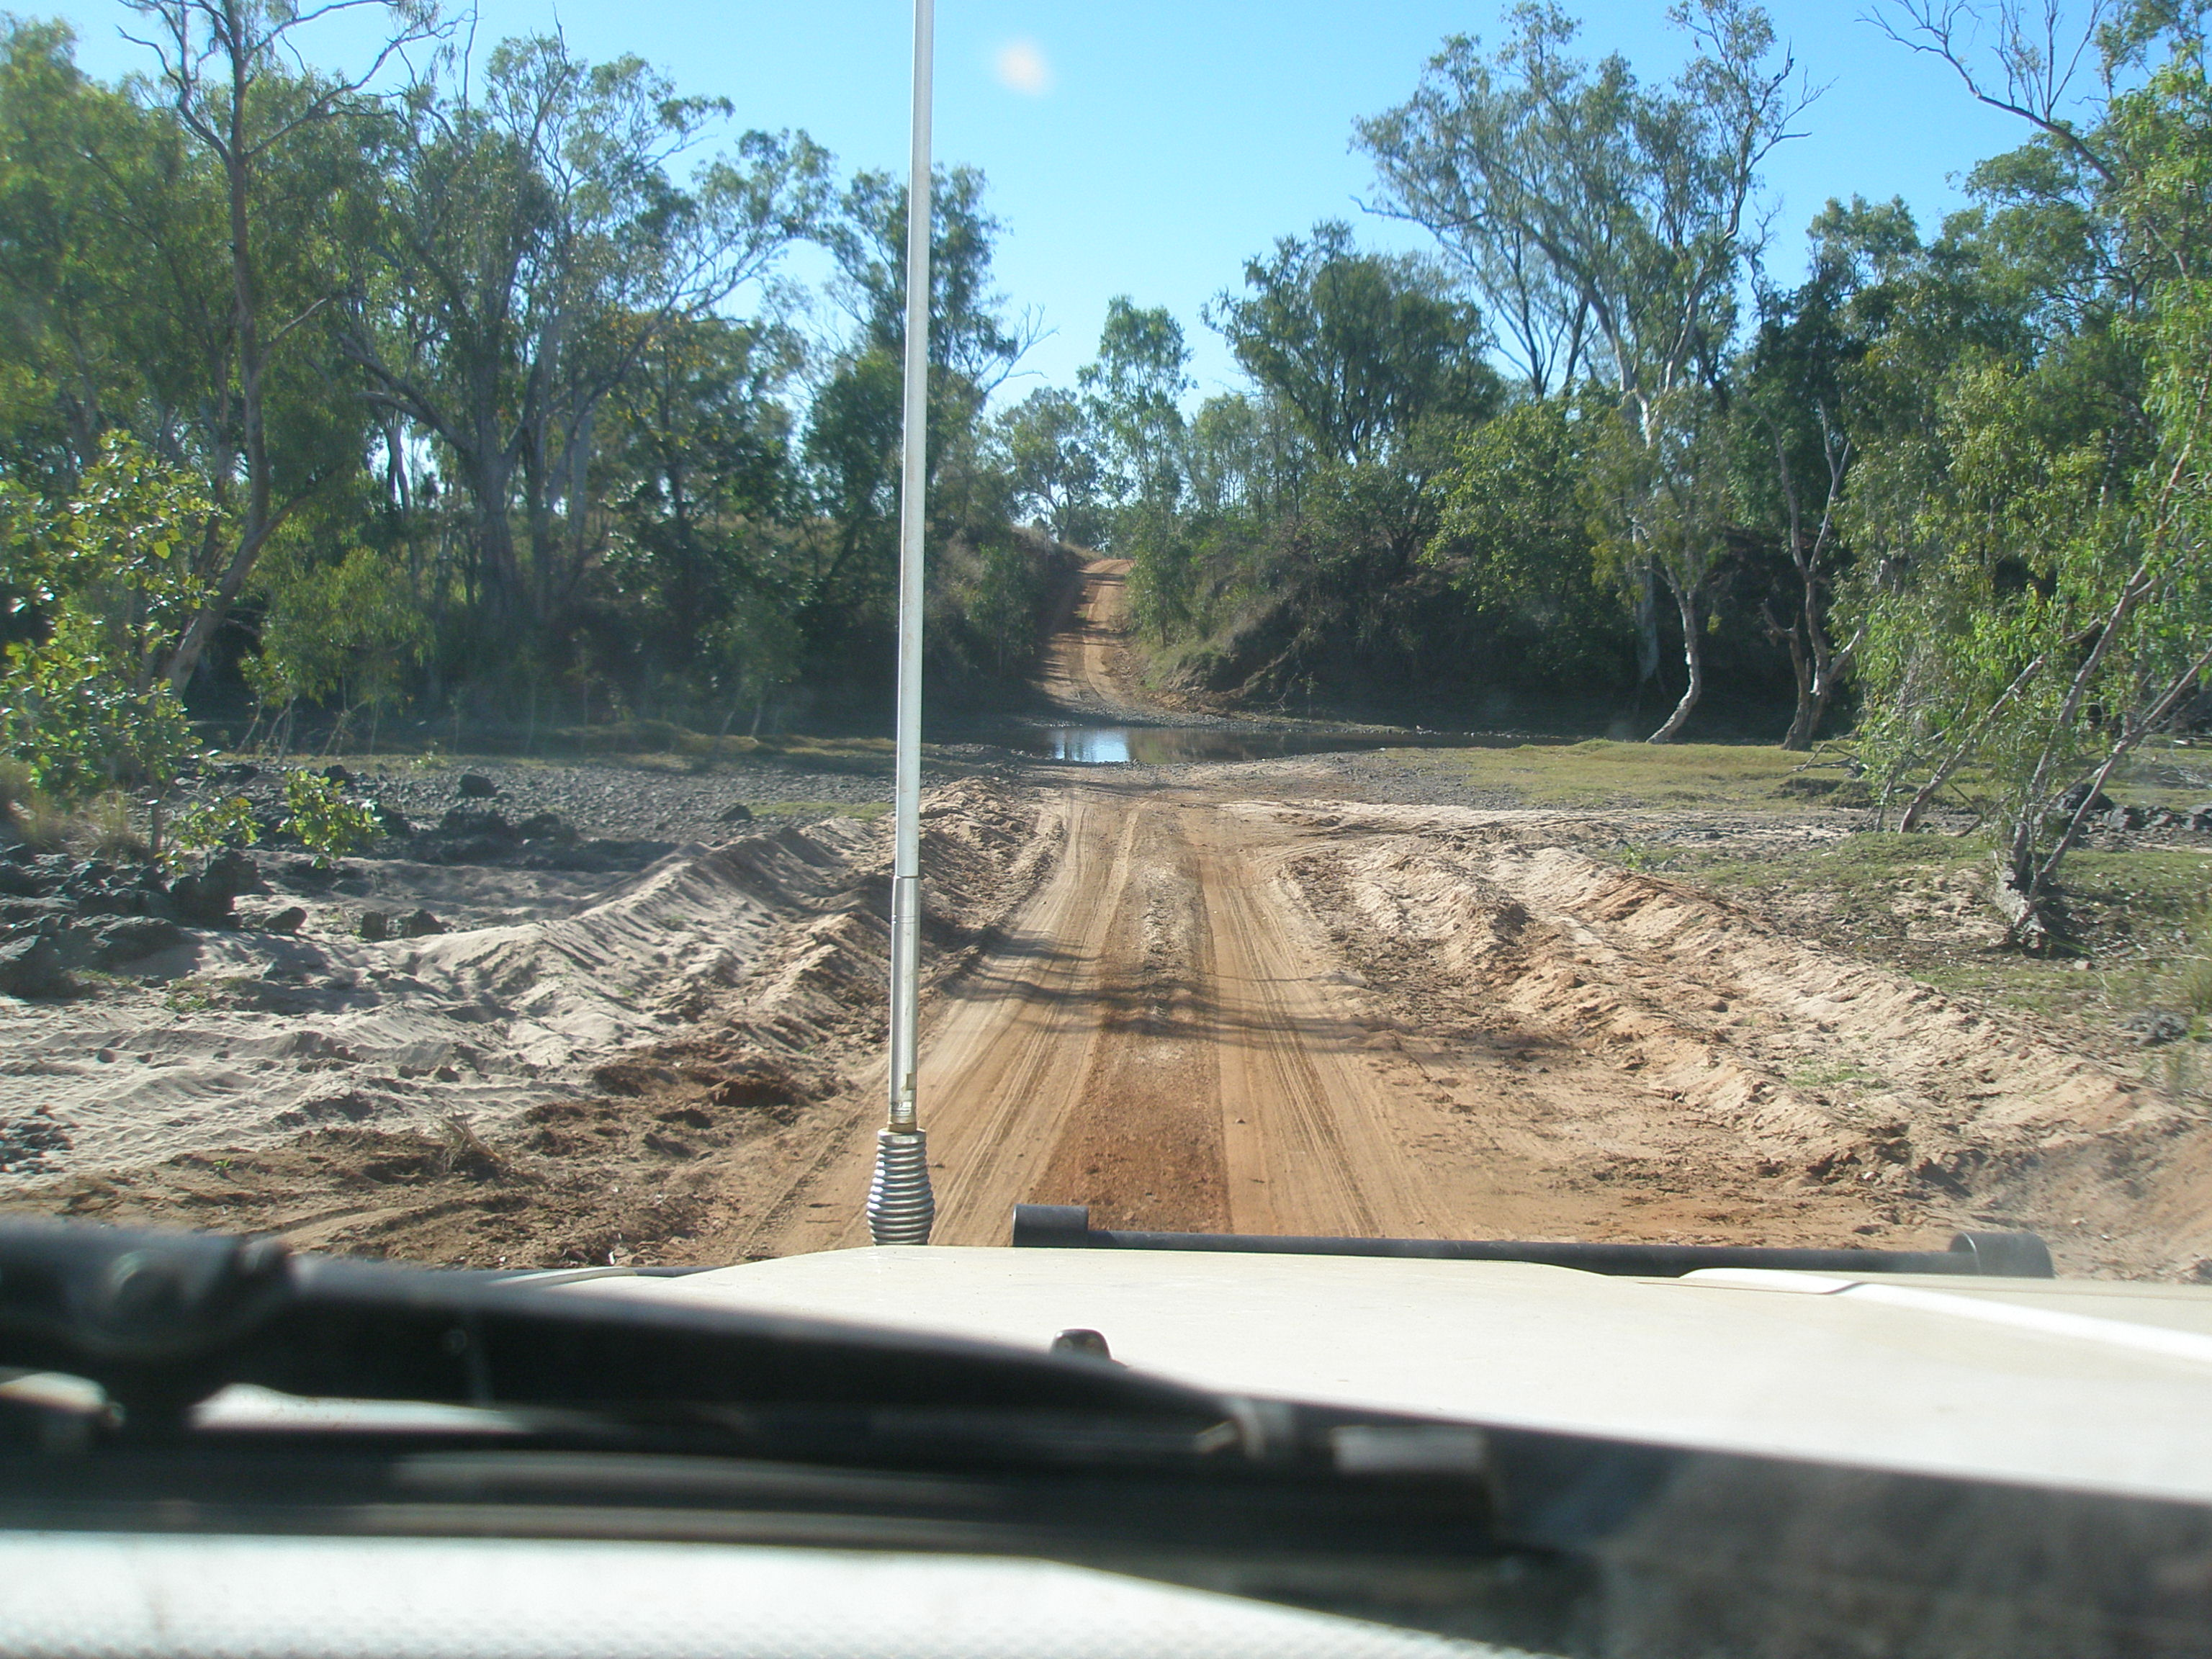 4wd camper hire needed for rough roads